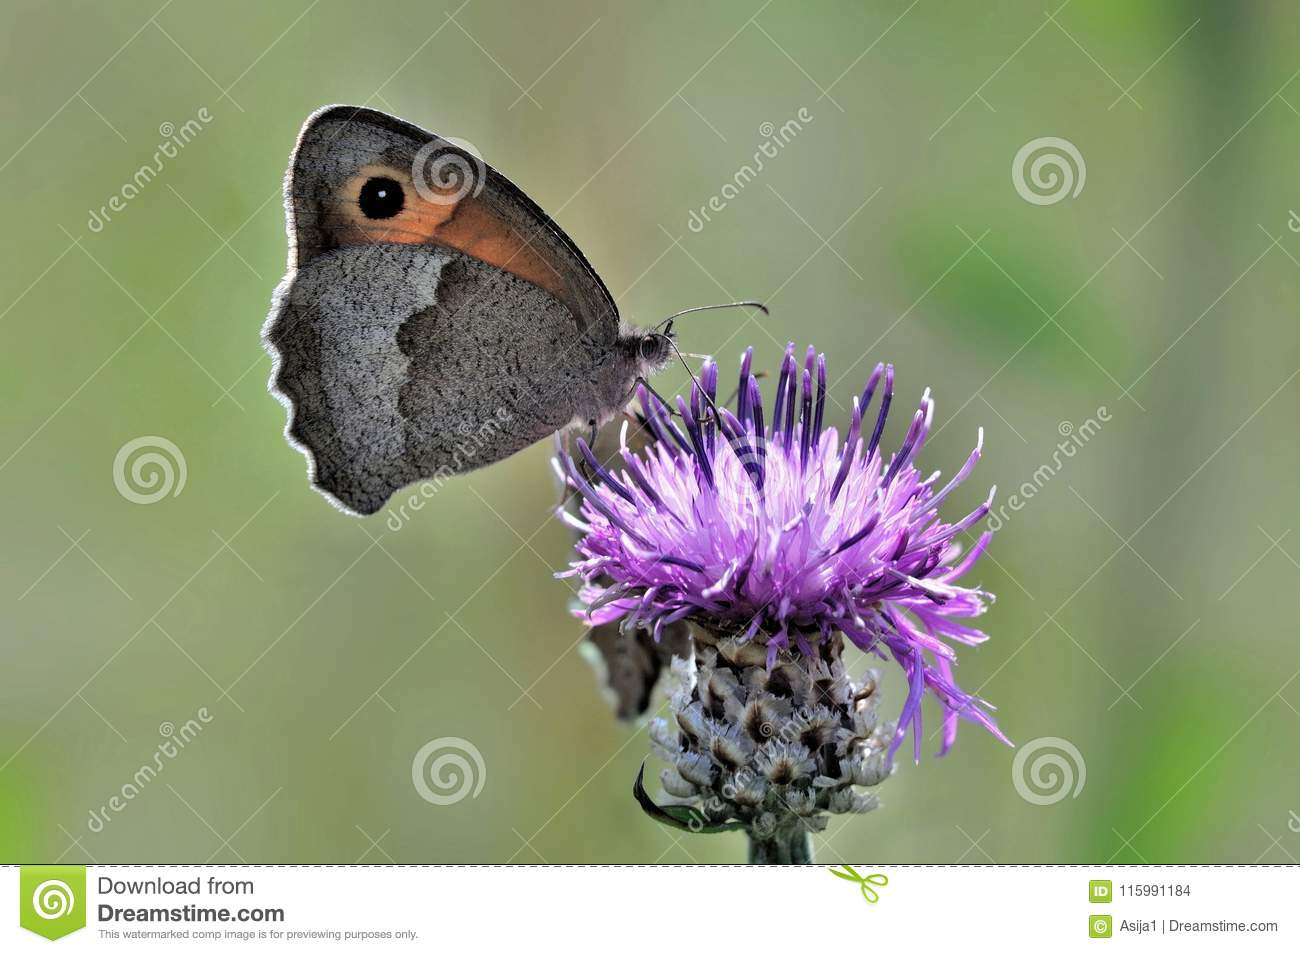 Butterfly sitting on a flower, closeup